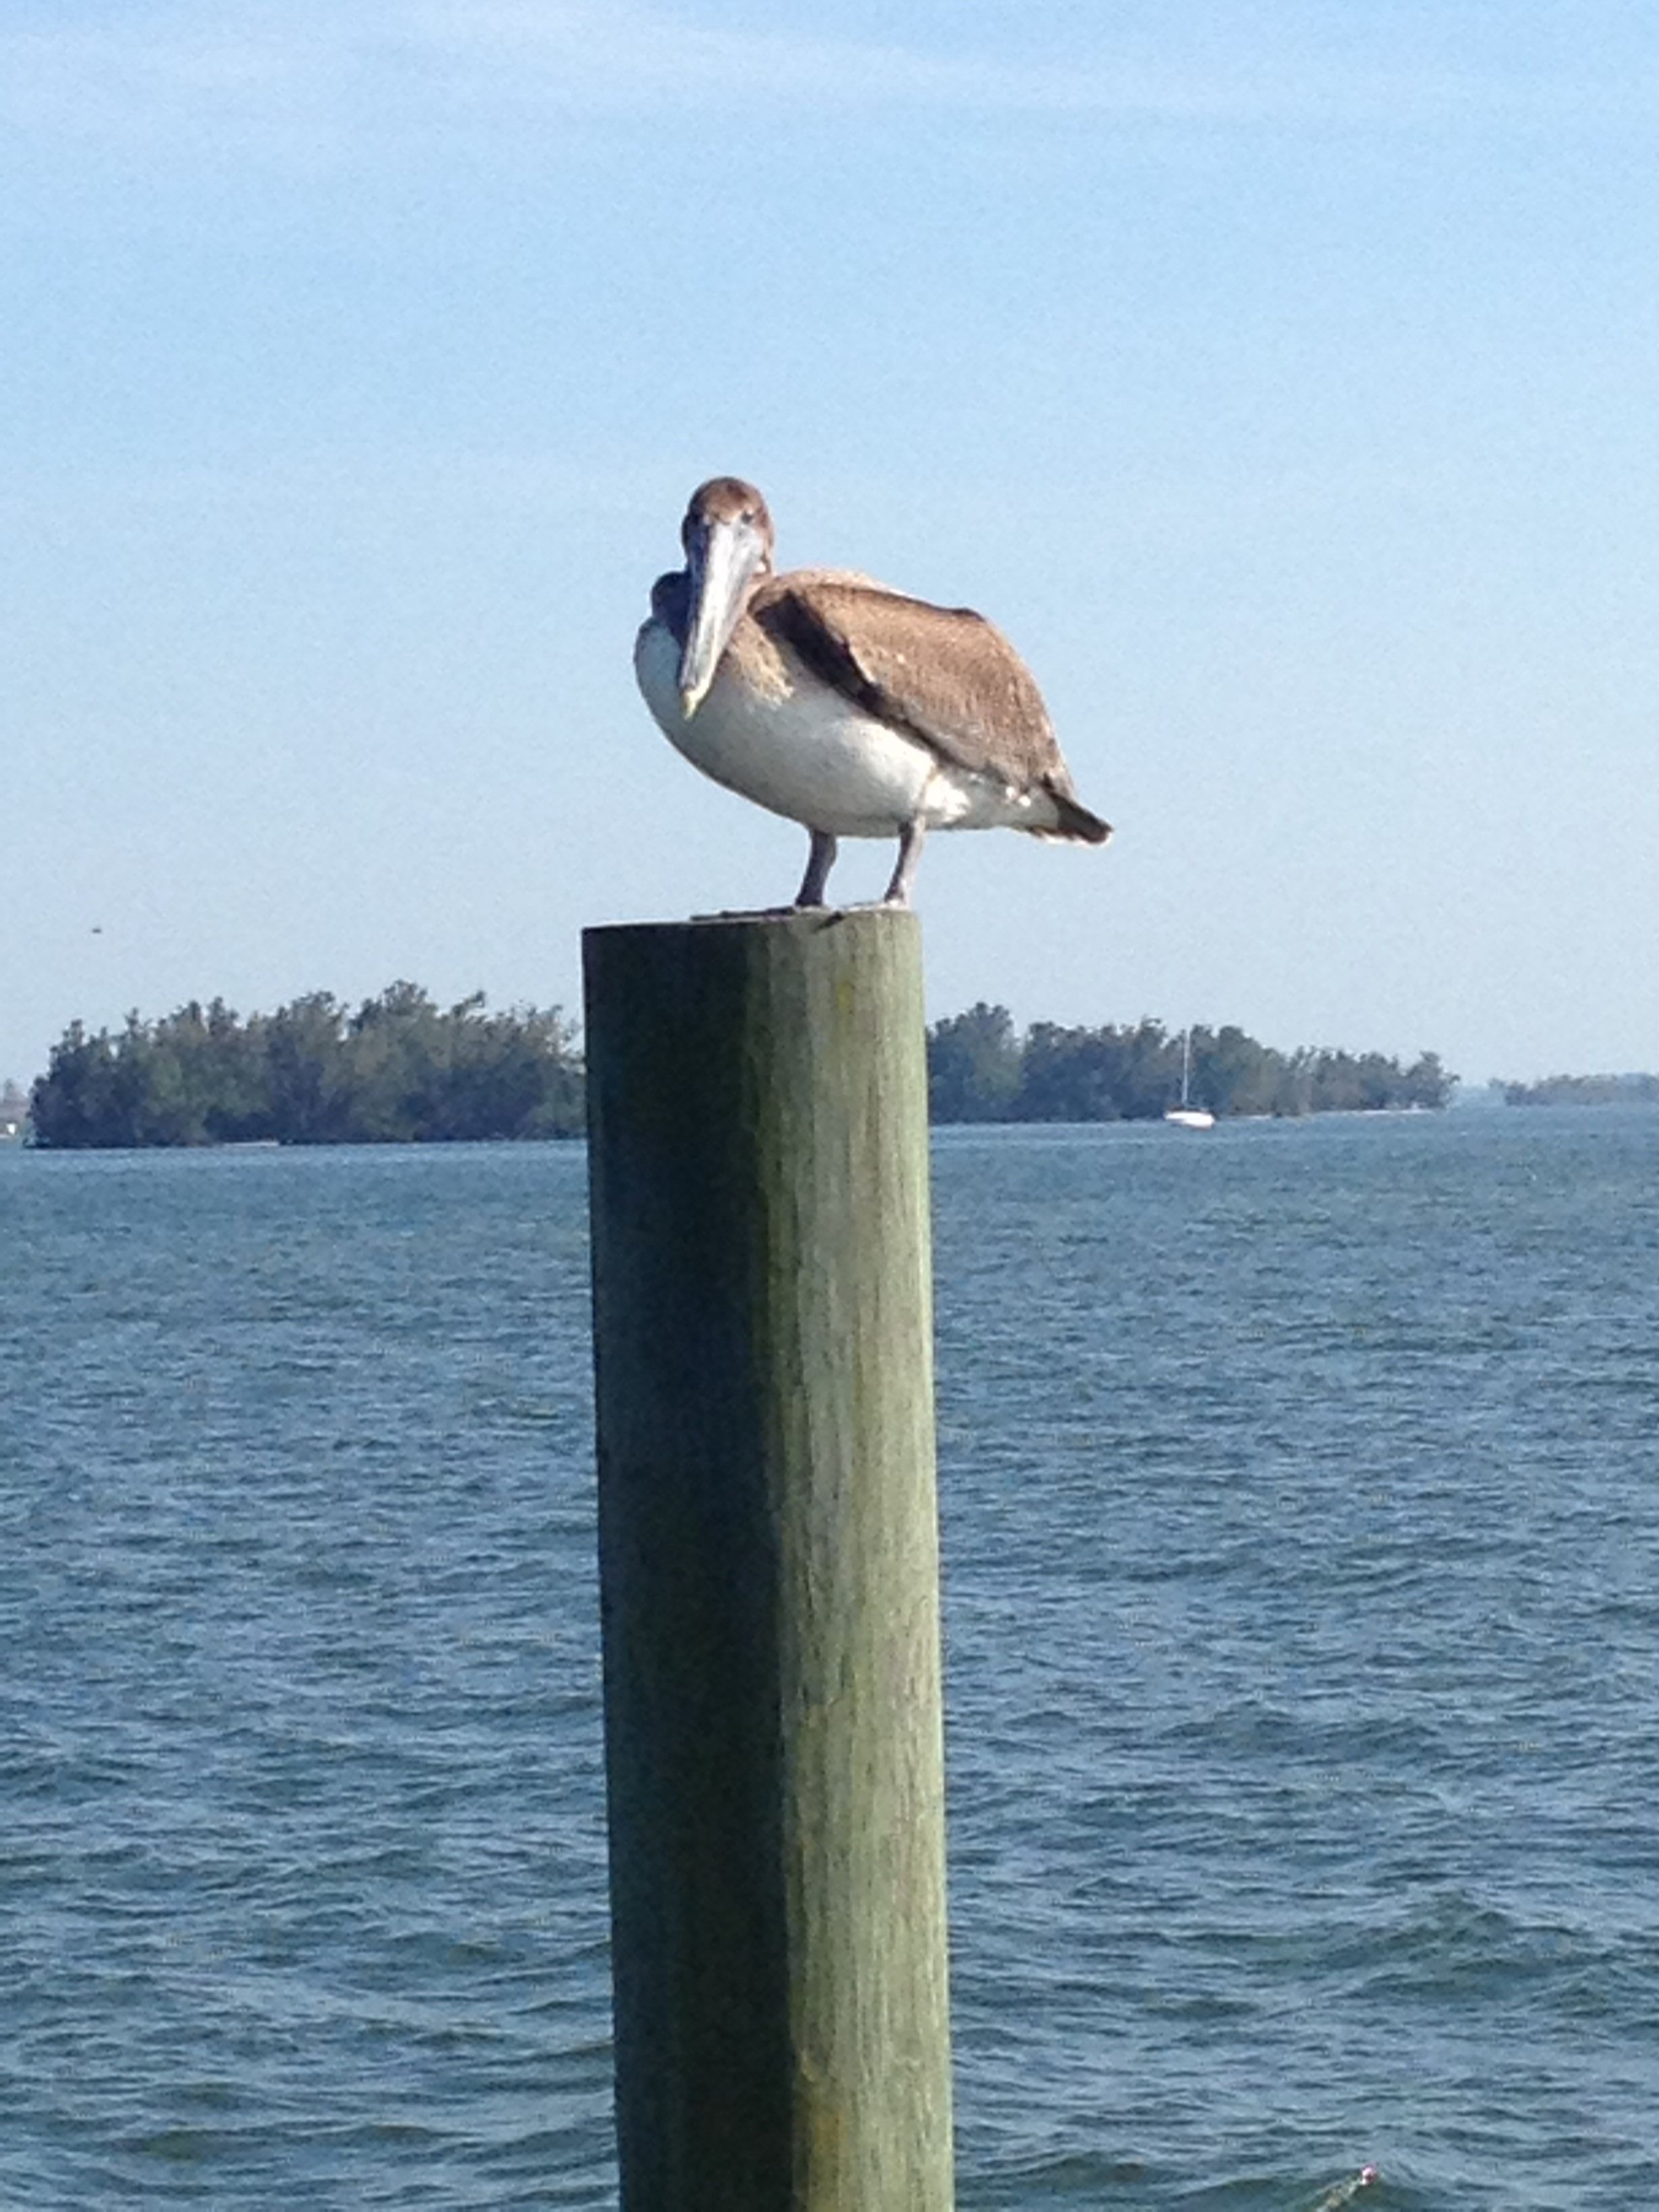 Sitting on the dock!